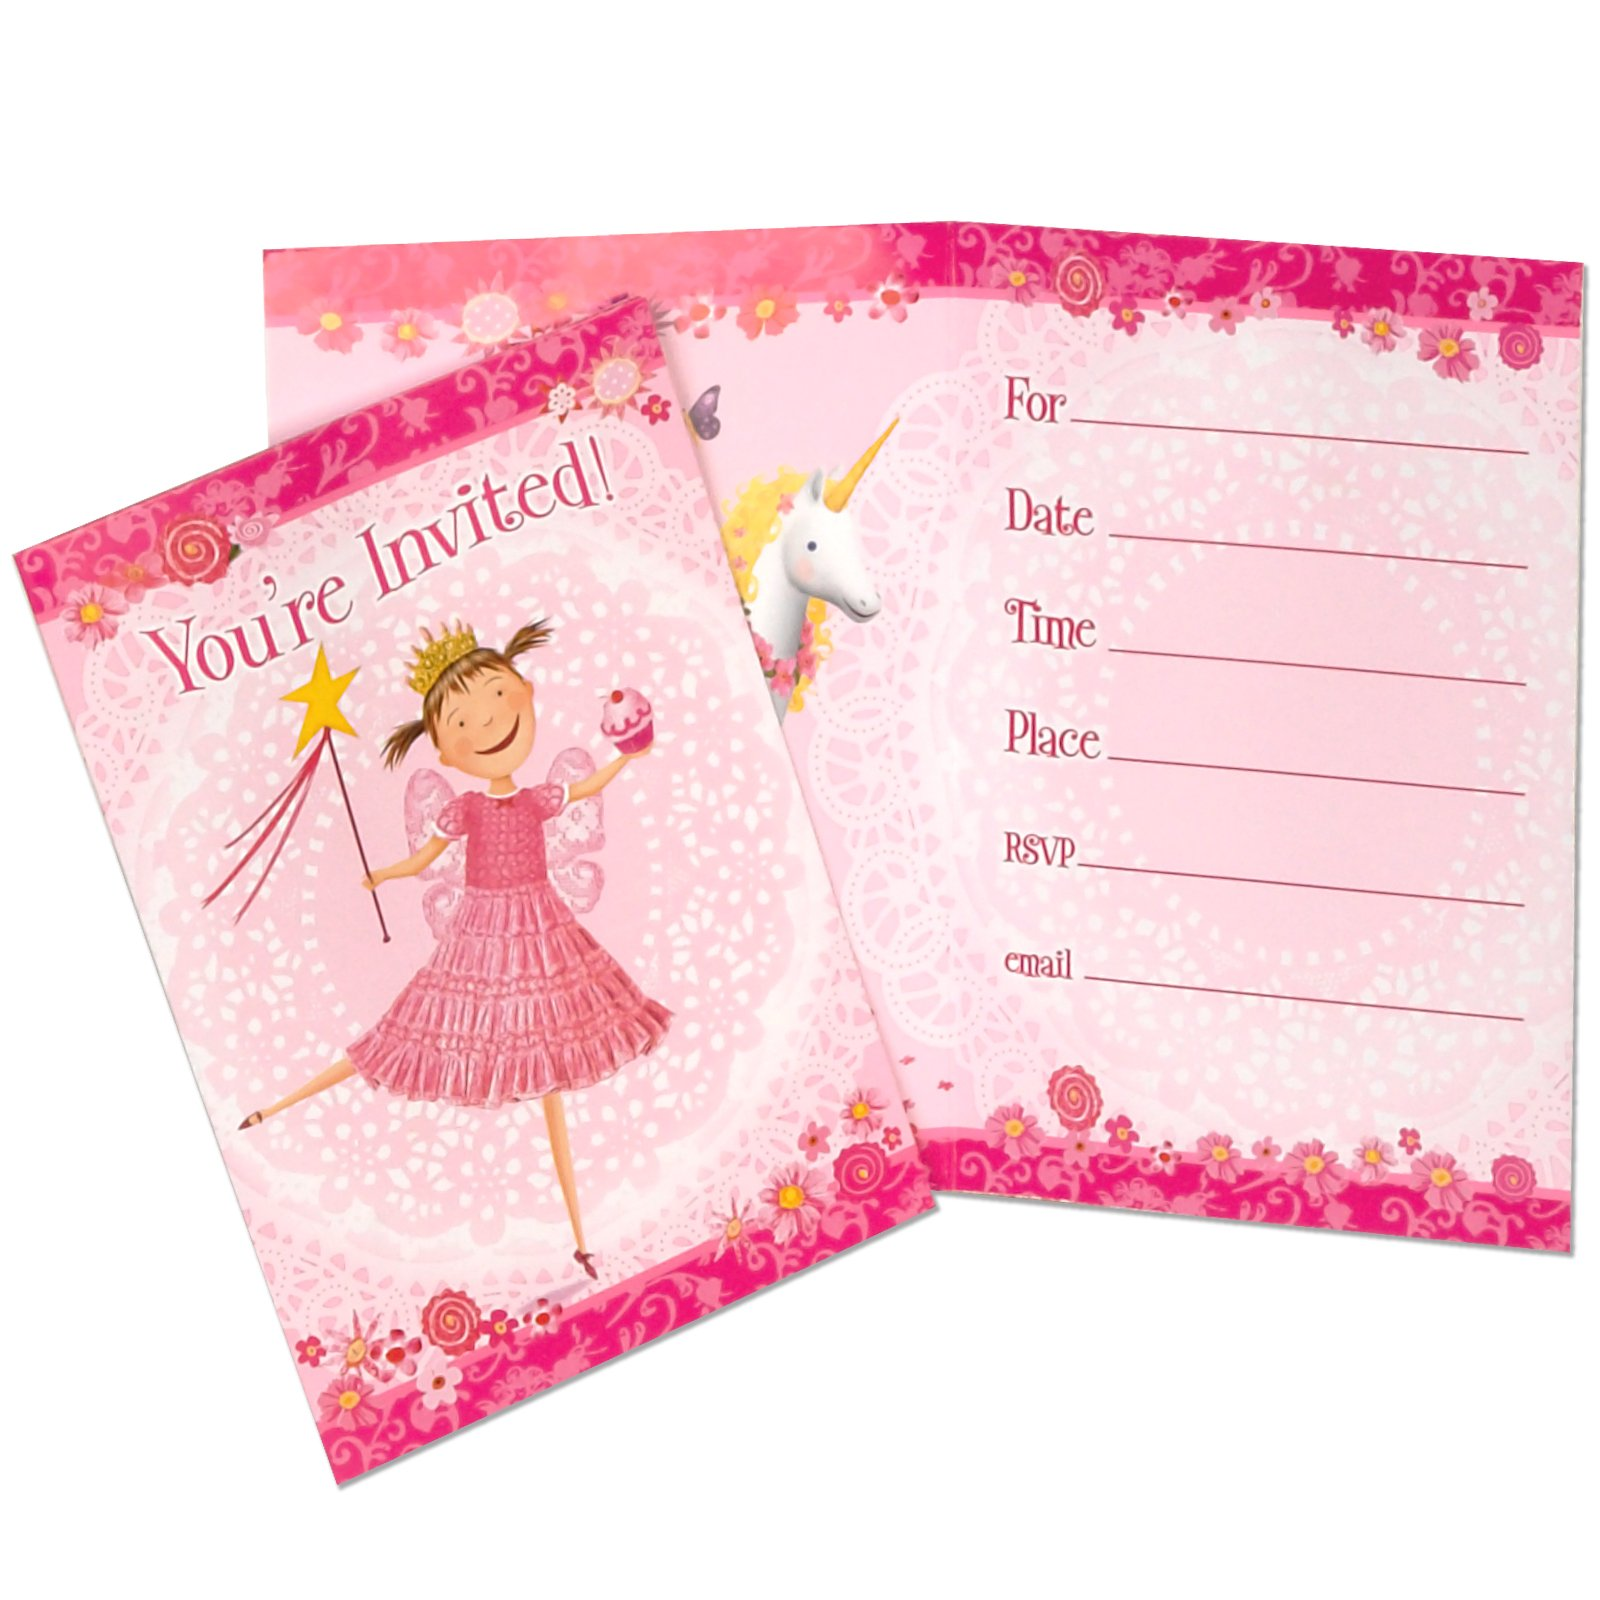 Pinkalicious Invitations (8 count)